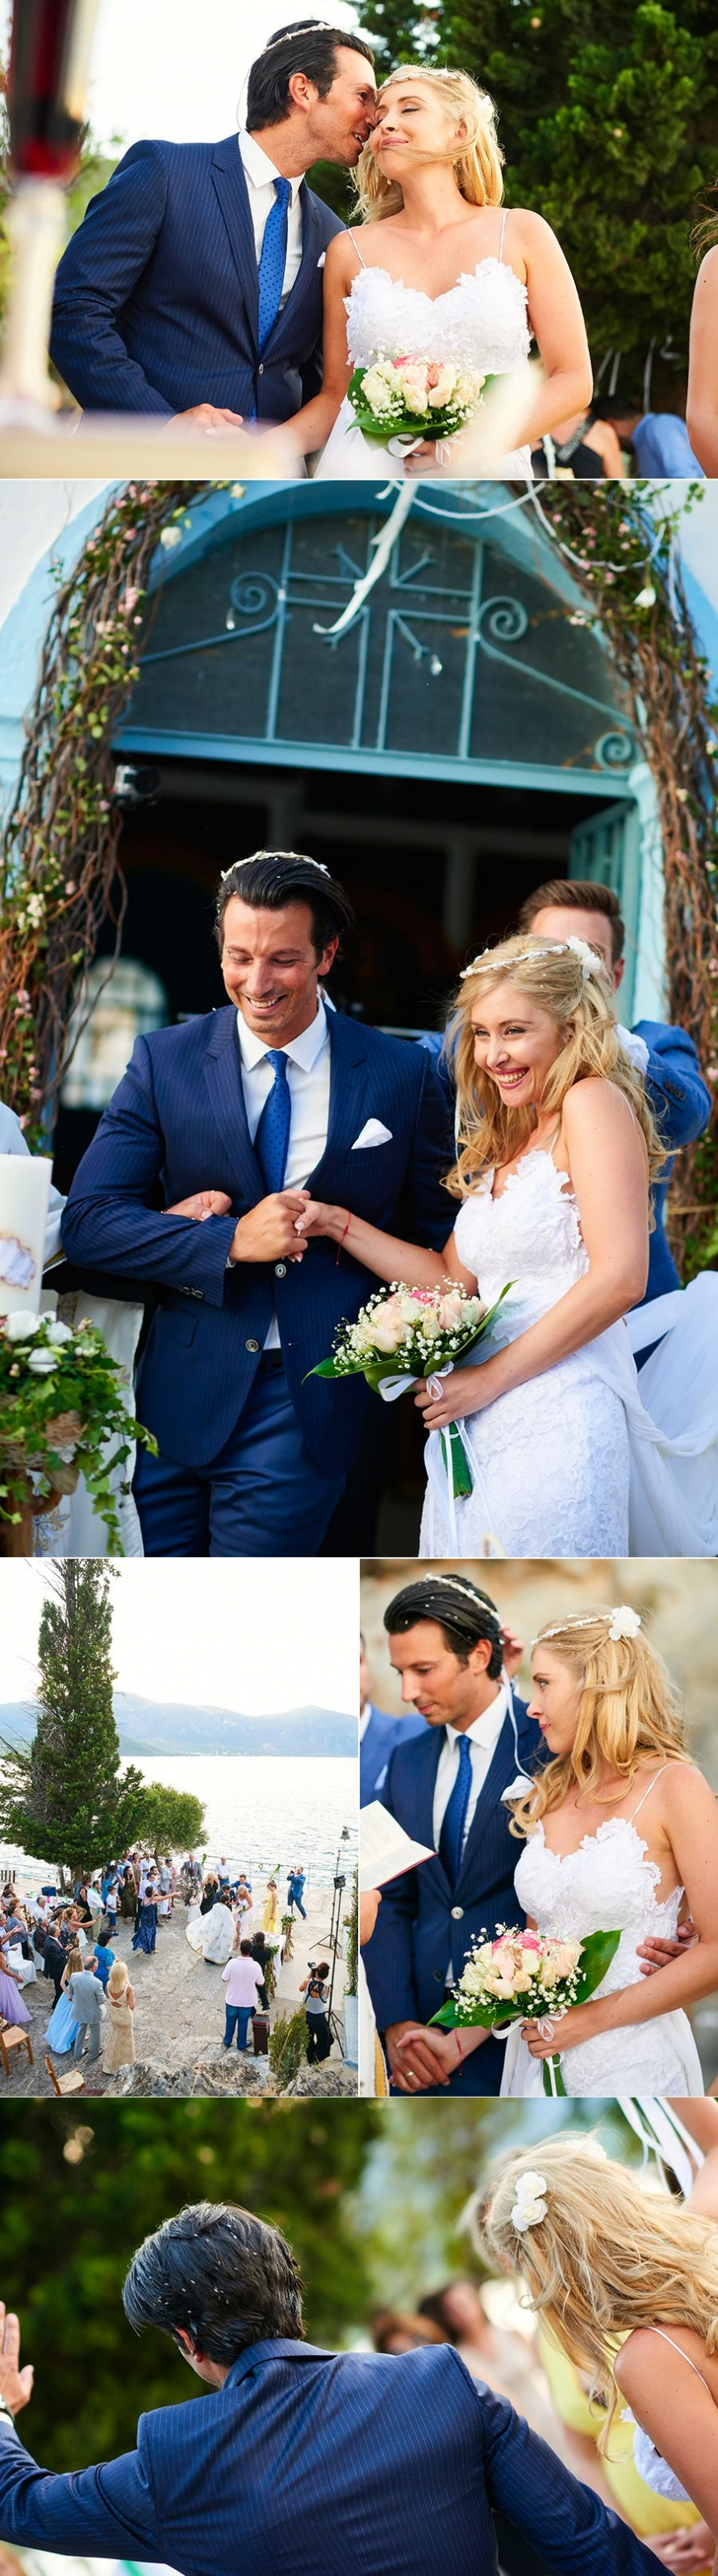 giannis-stella-wedding-photo-10